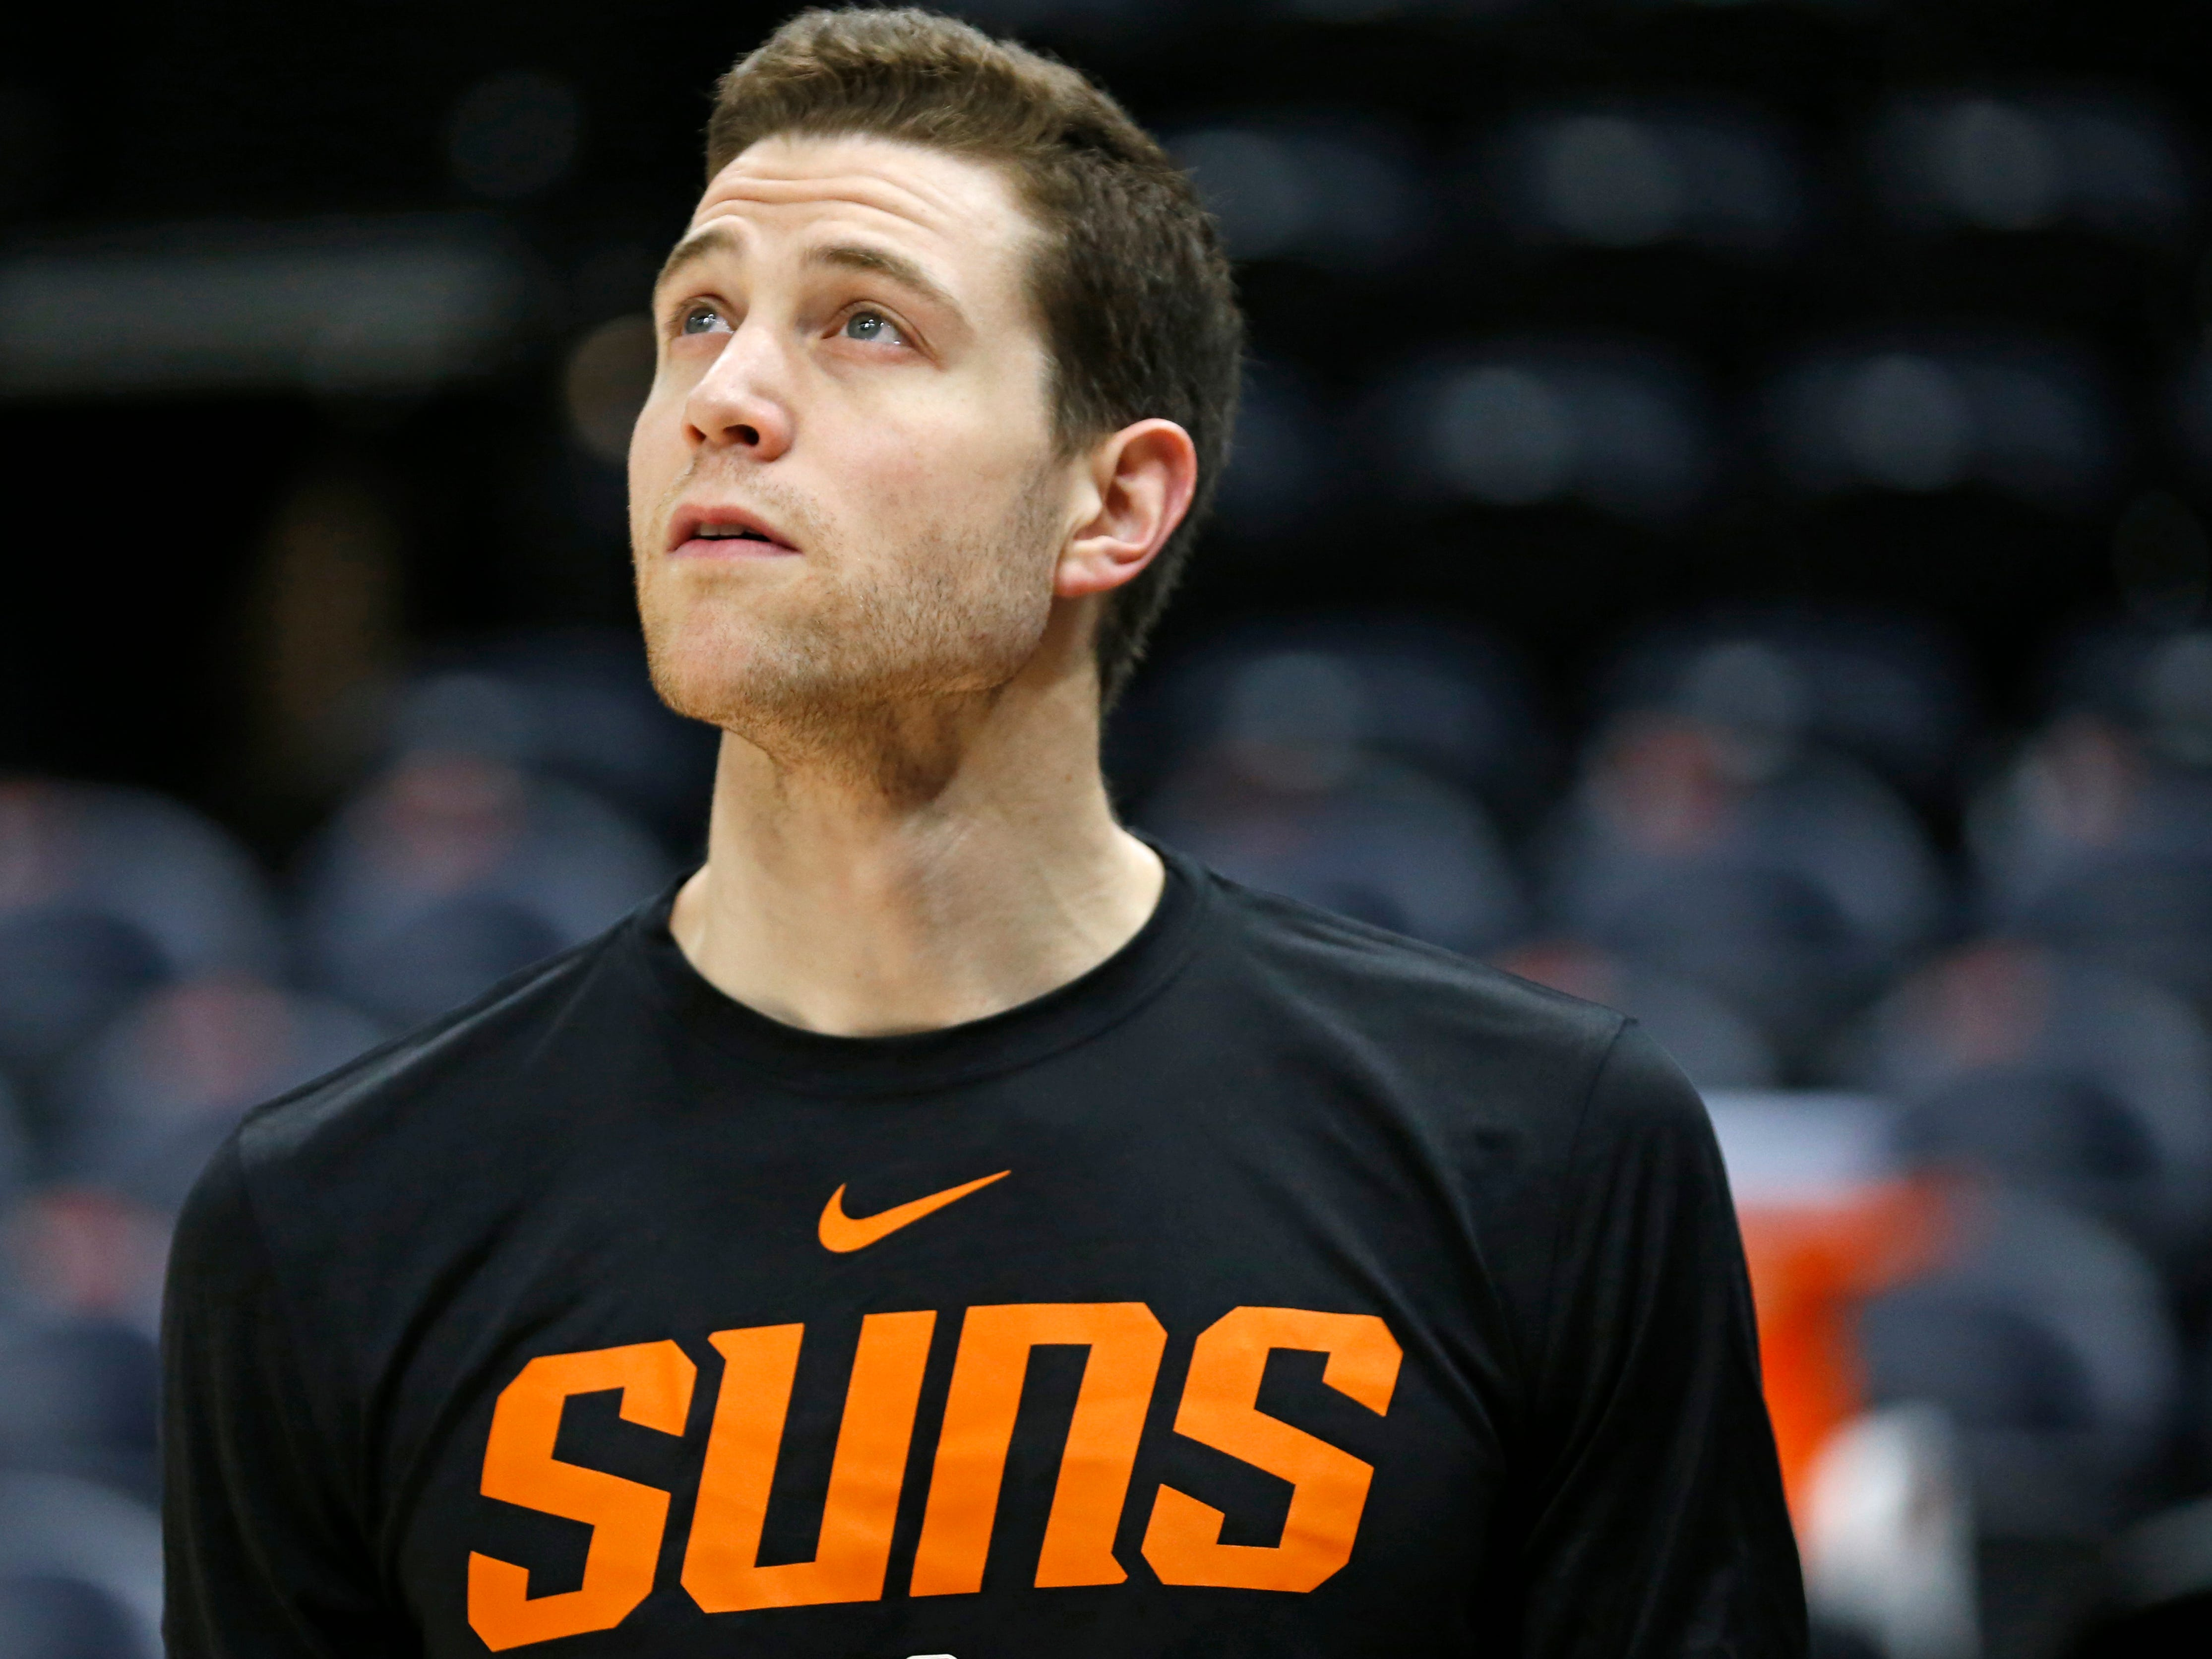 Phoenix Suns guard Jimmer Fredette looks on while warming-up before the start of their NBA basketball game against the Utah Jazz Monday, March 25, 2019, in Salt Lake City.